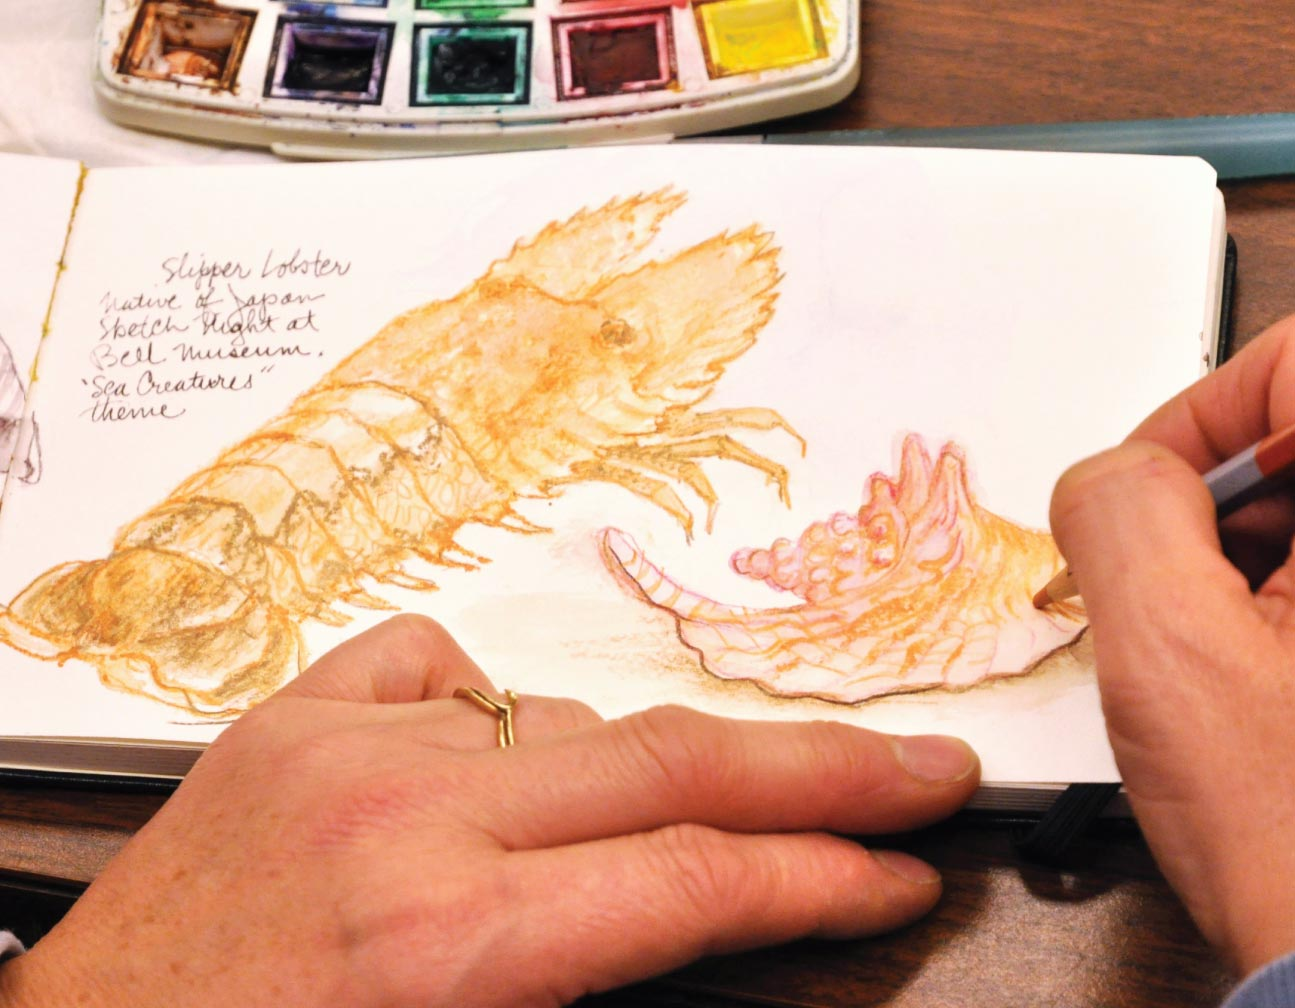 Sketch of a slipper lobster